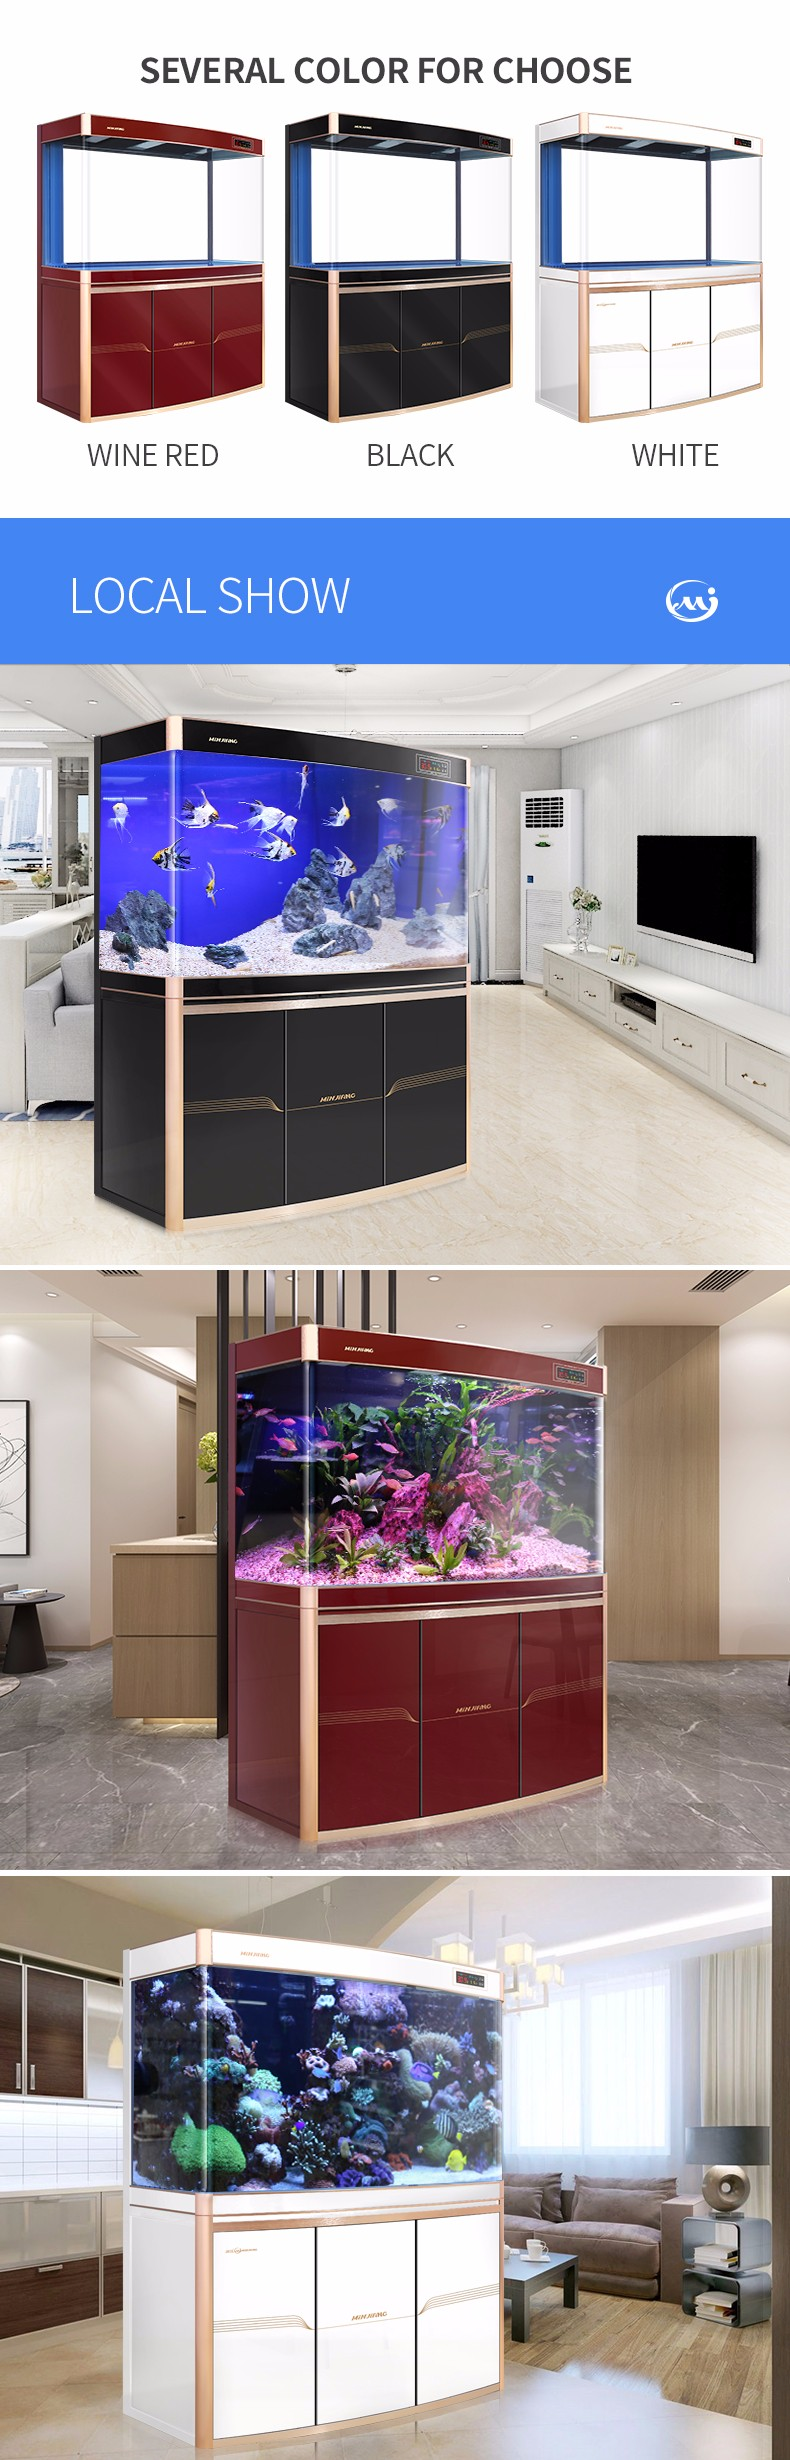 Minjiang Home Decor aquarium LED verlichting fish bewapenen tank